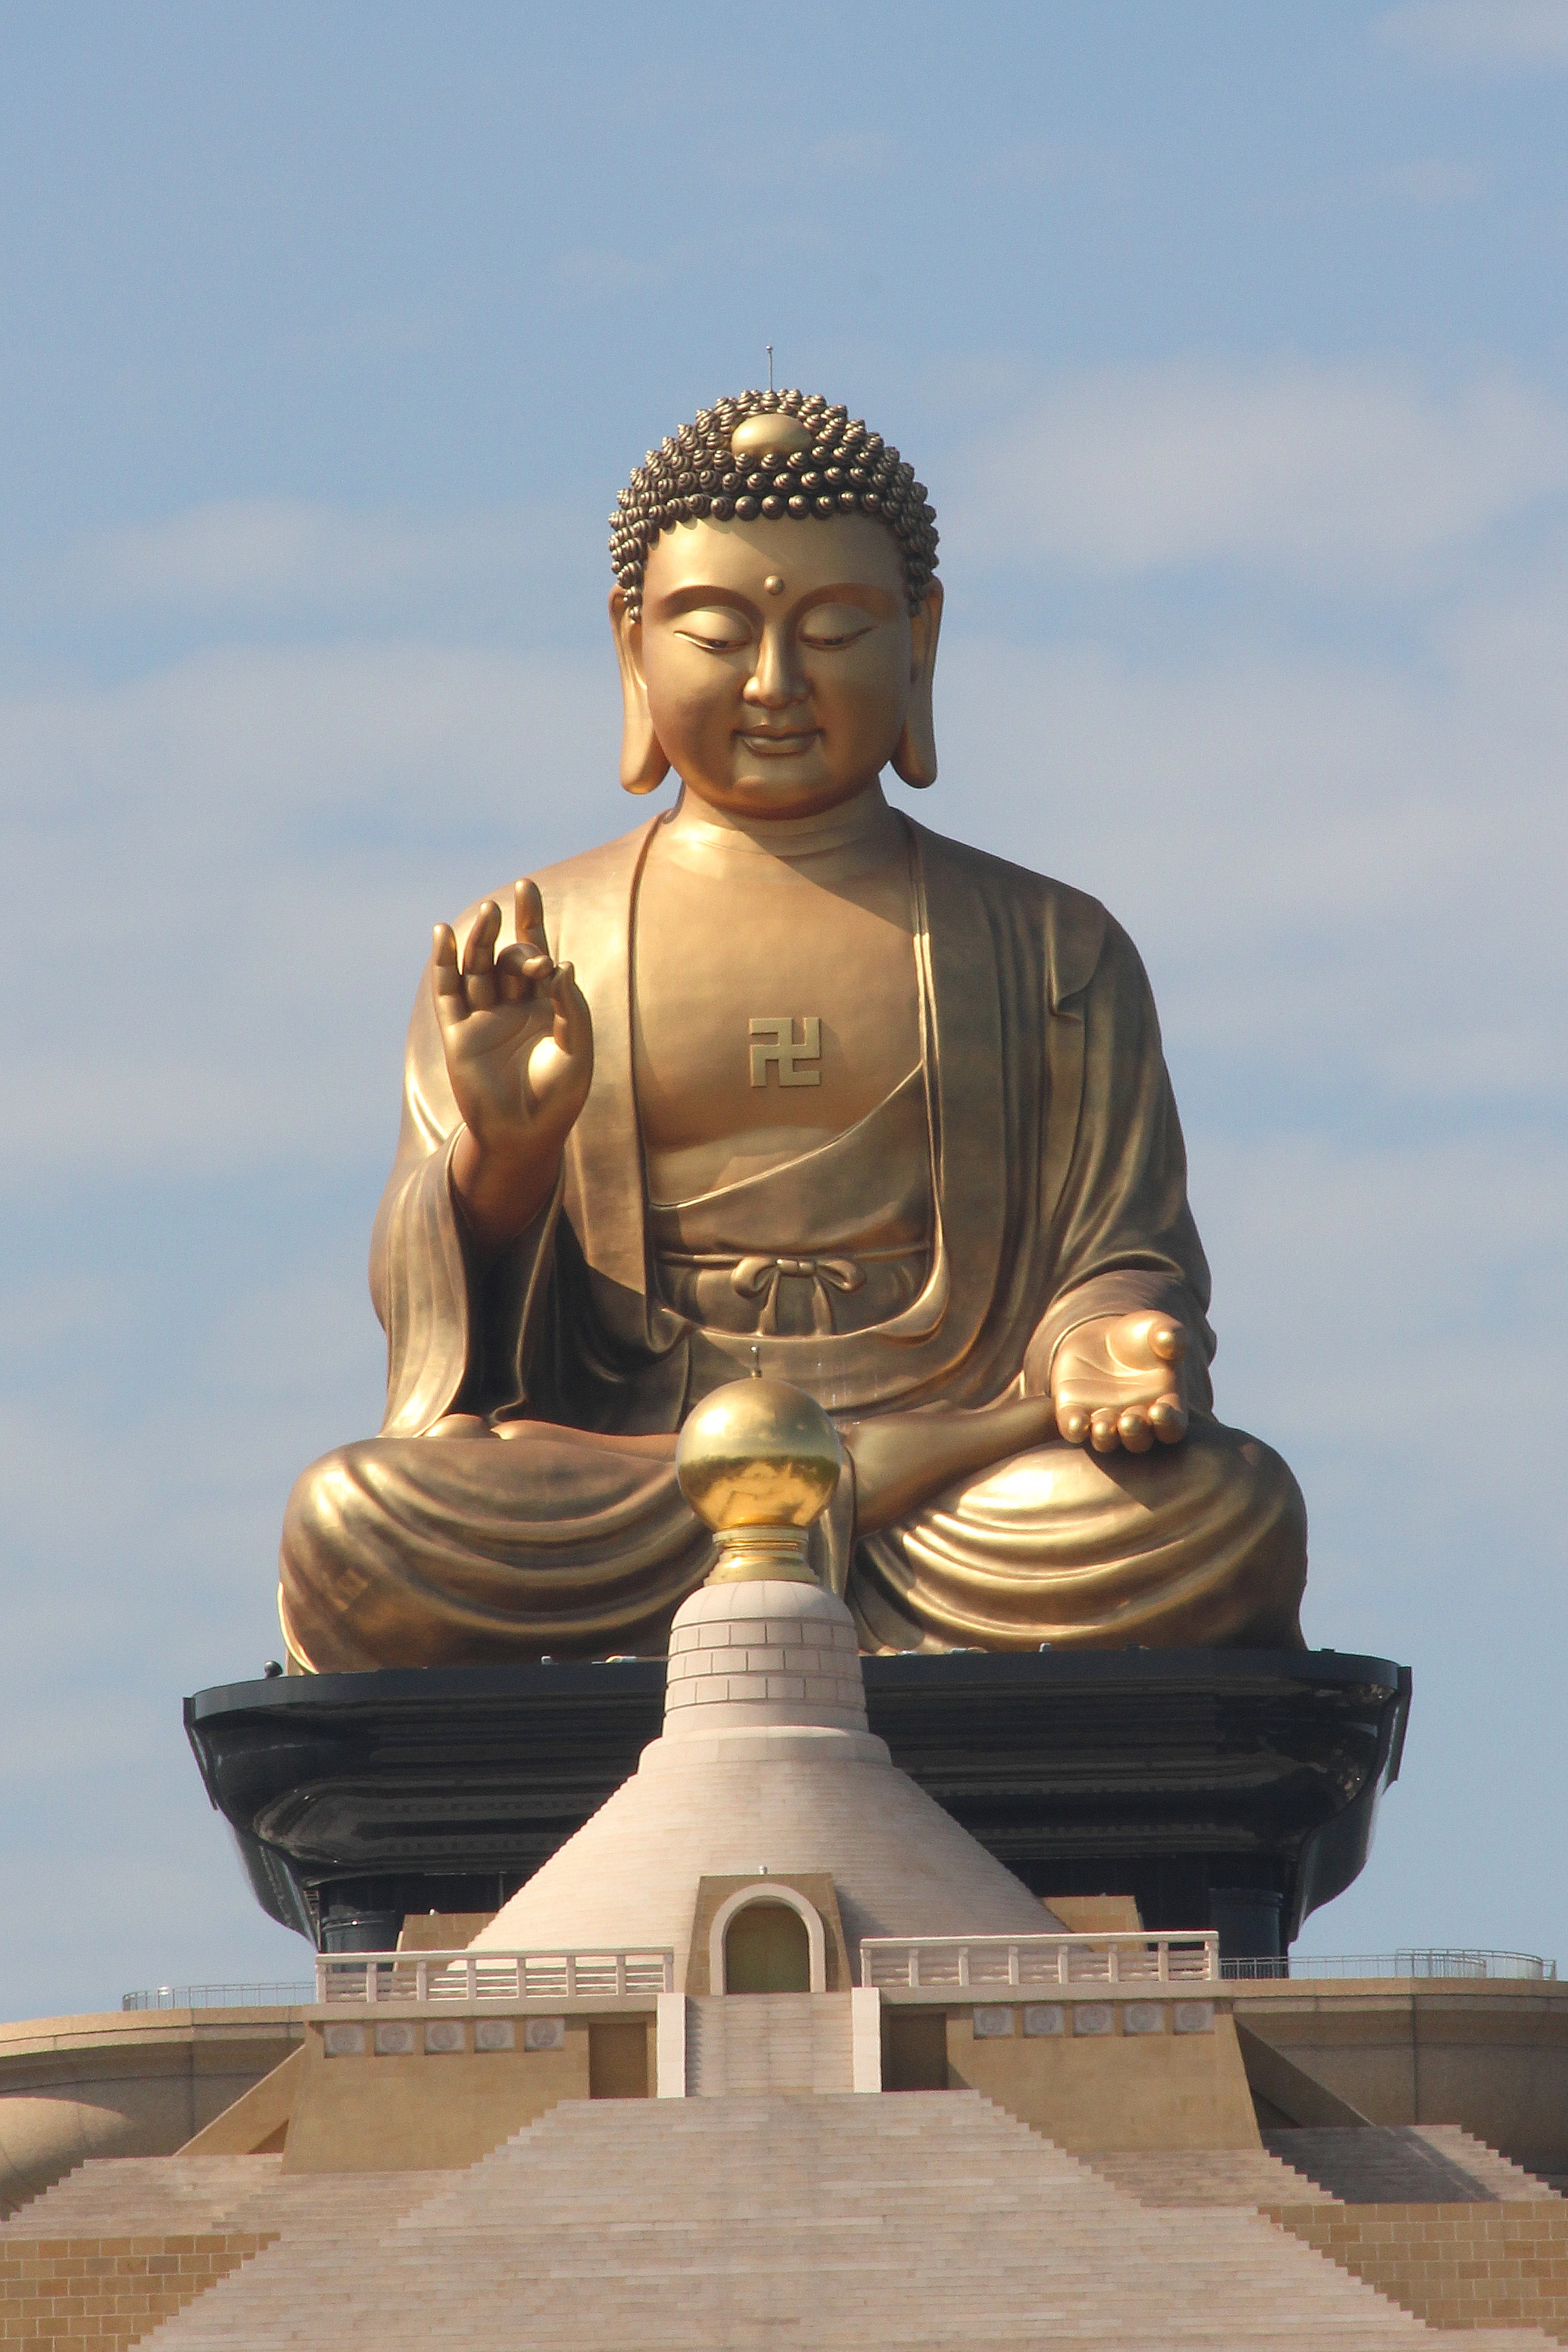 https://upload.wikimedia.org/wikipedia/commons/0/00/Buddha_statue_at_Fo_Guang_Shan_in_Kaohsiung,_Taiwan.jpg